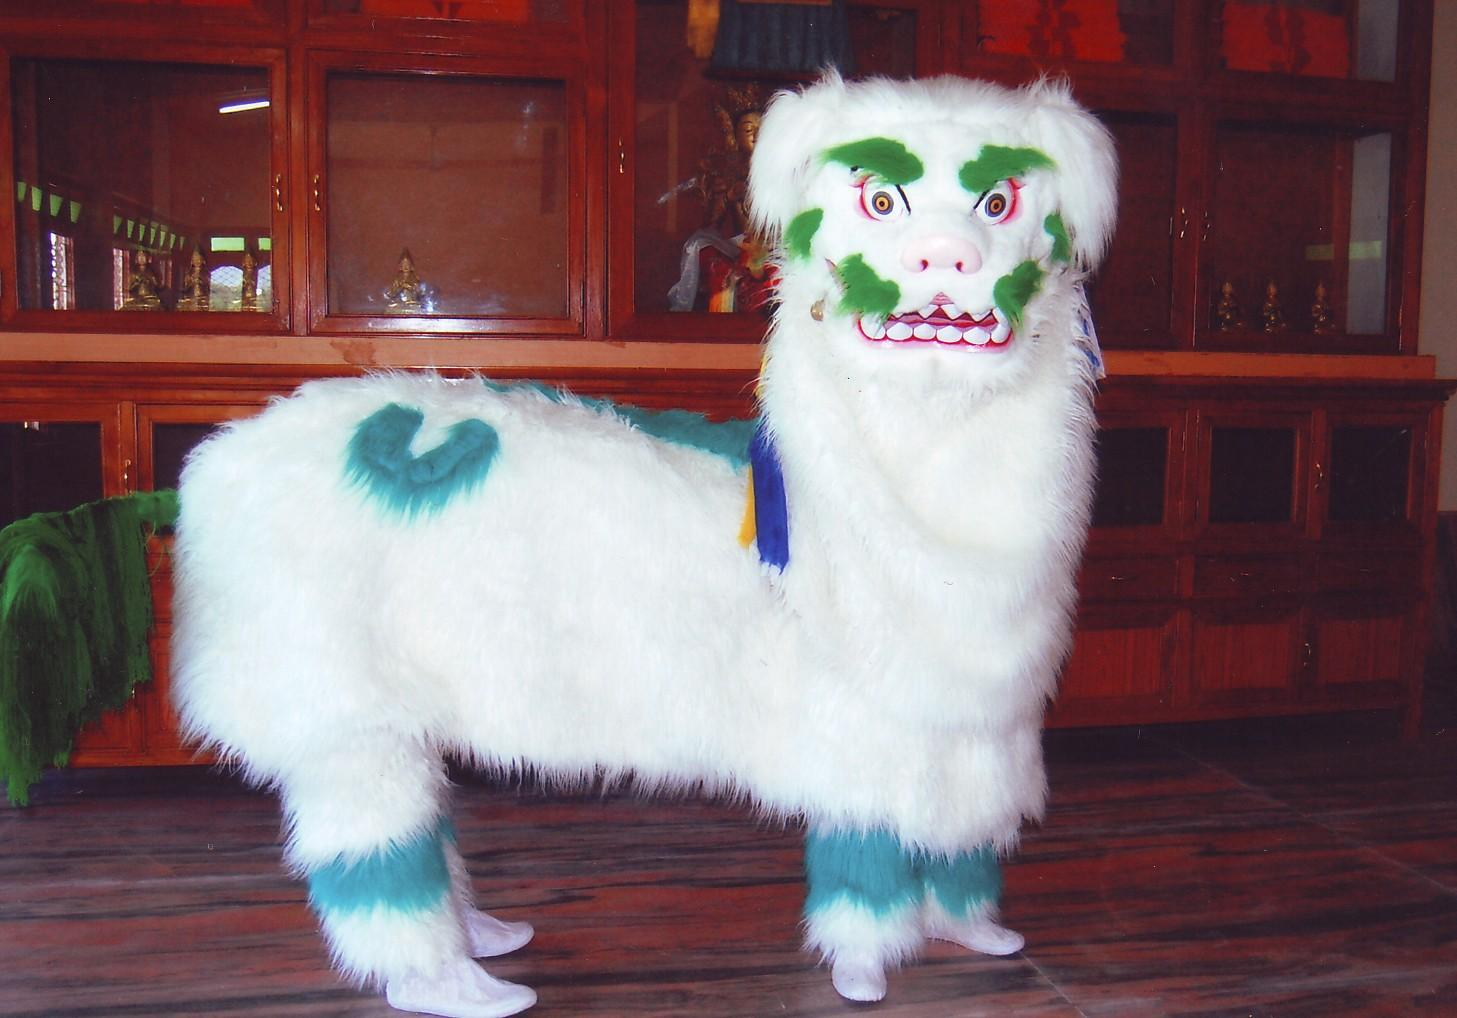 In Tibet the Snow Lion symbolizes the fearless and elegant quality of the enlightened mind